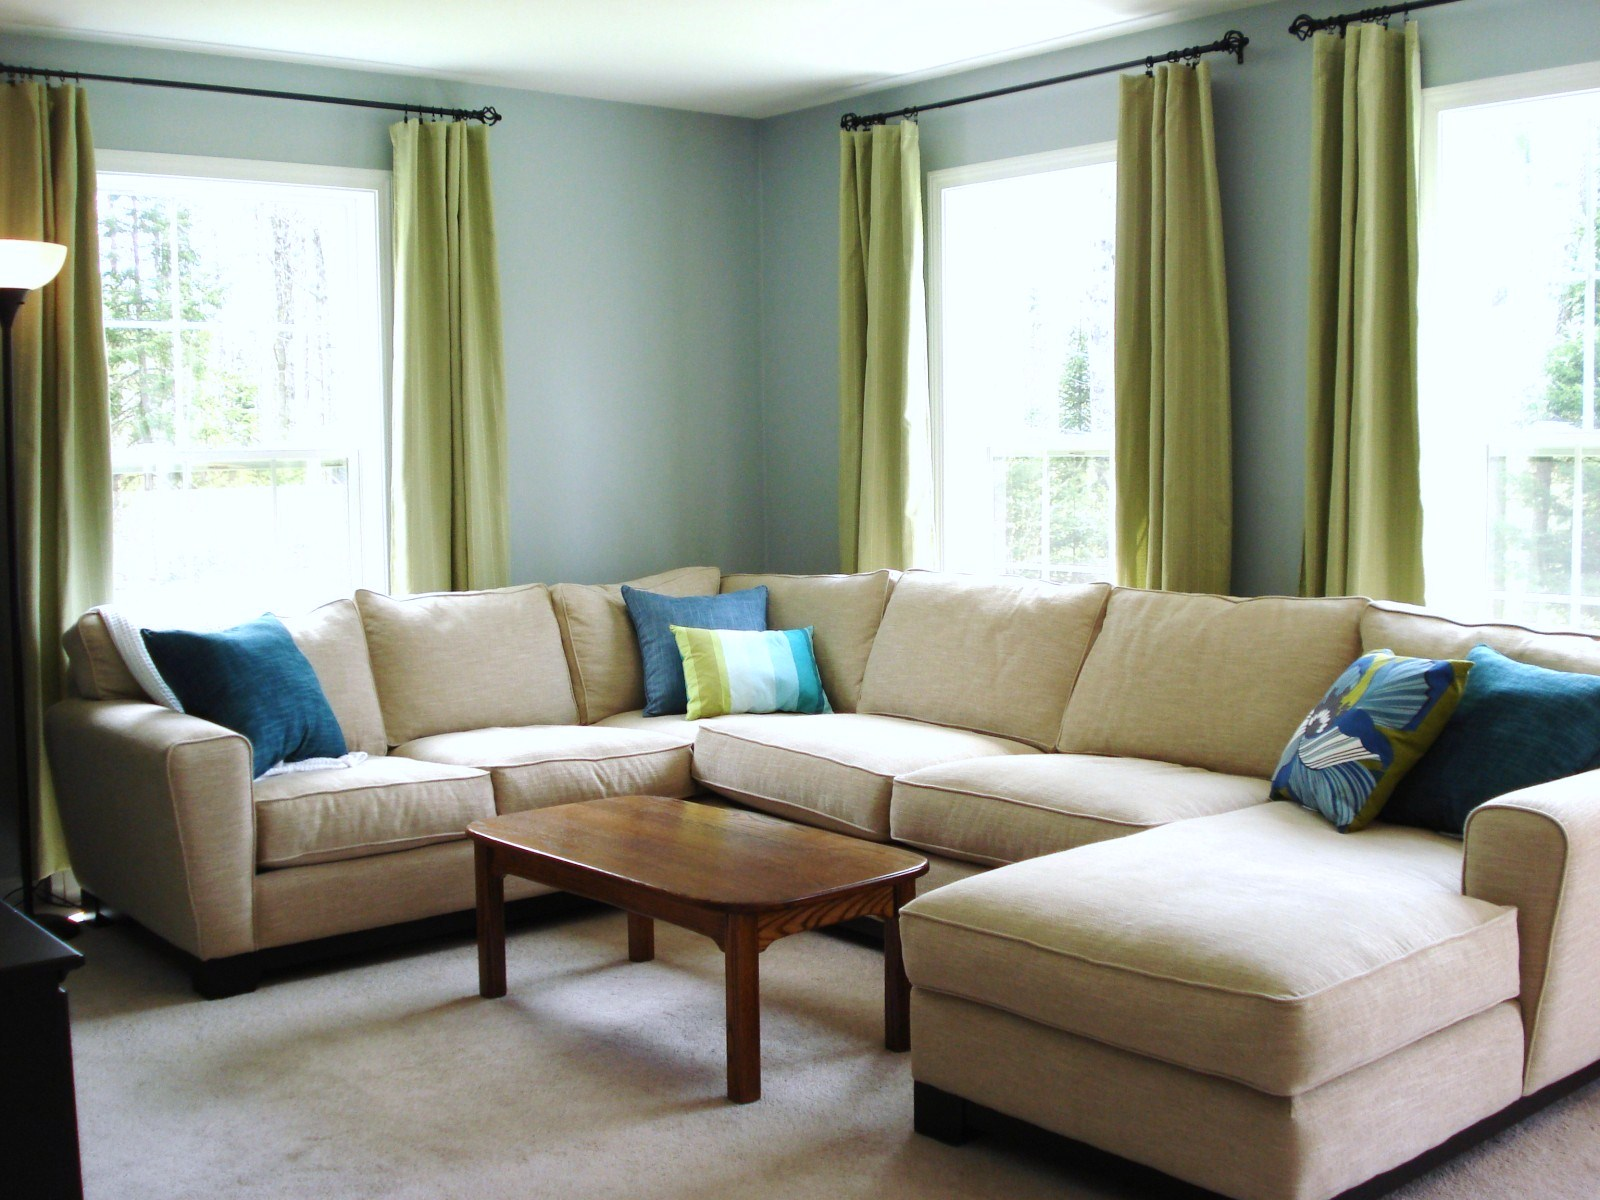 Heart maine home a new blue living room before and after - Green and blue living room pictures ...